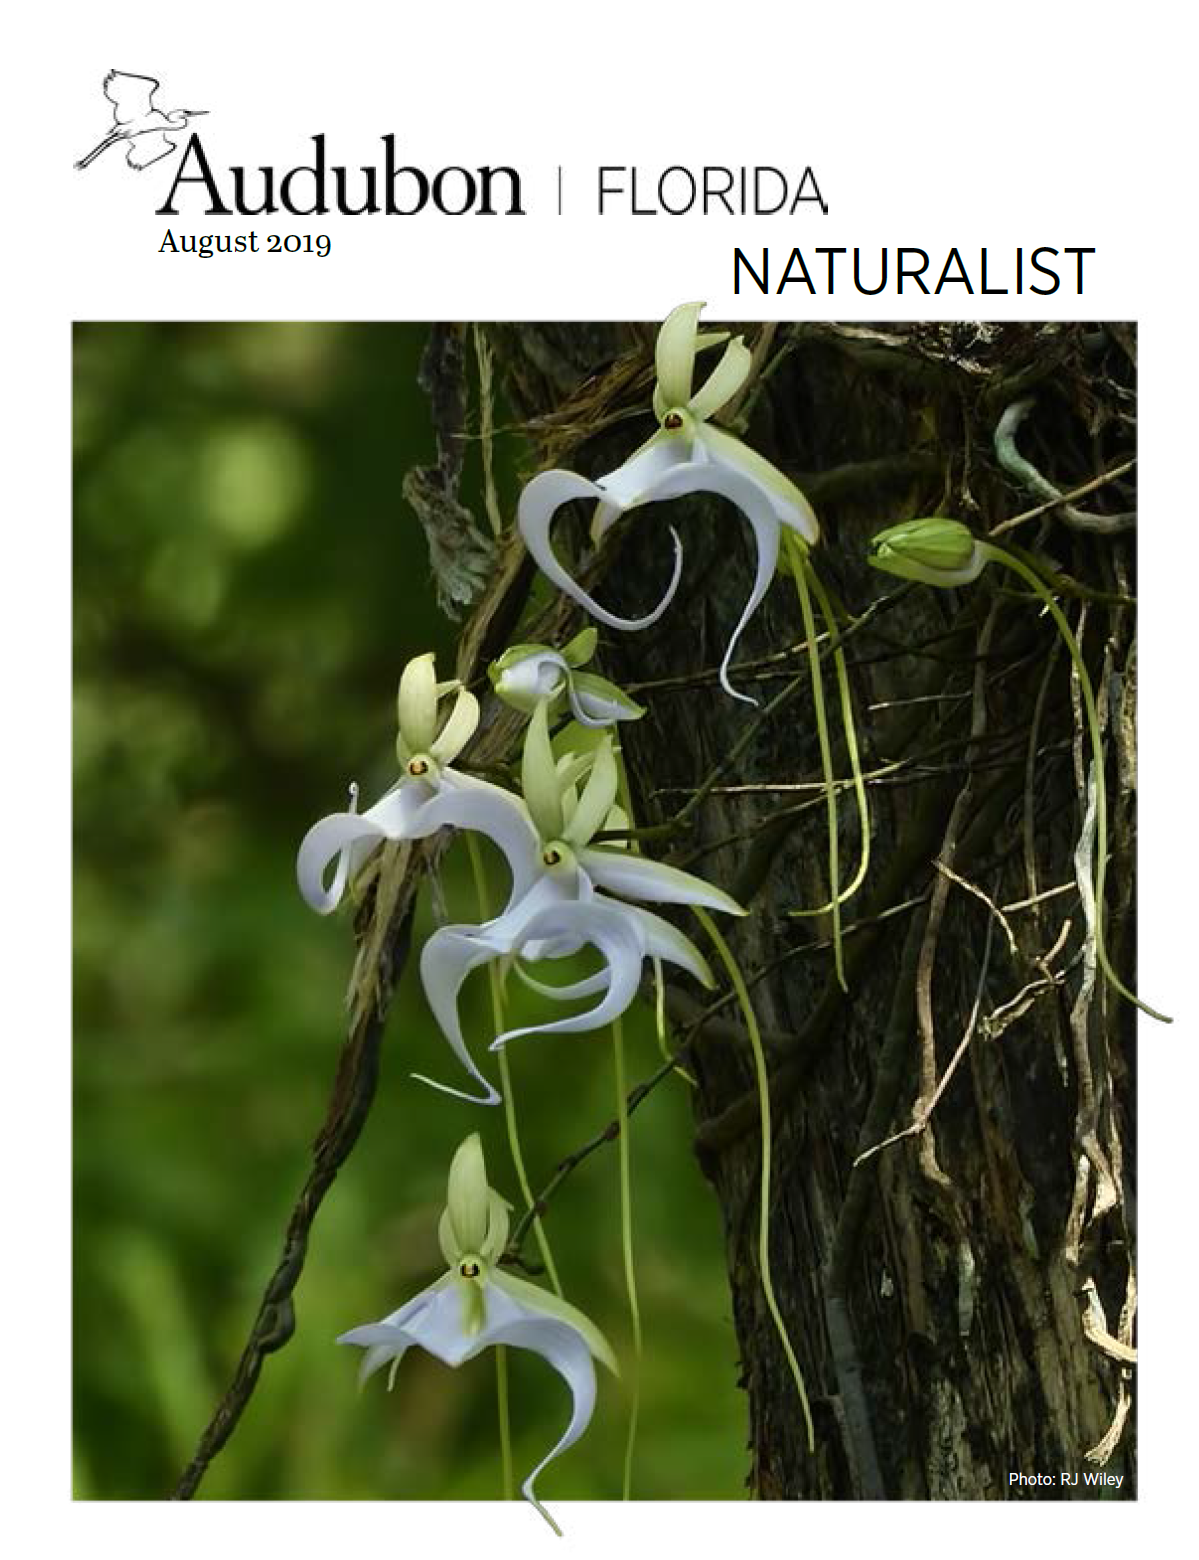 Photo of the cover of the August Issue of the Naturalist